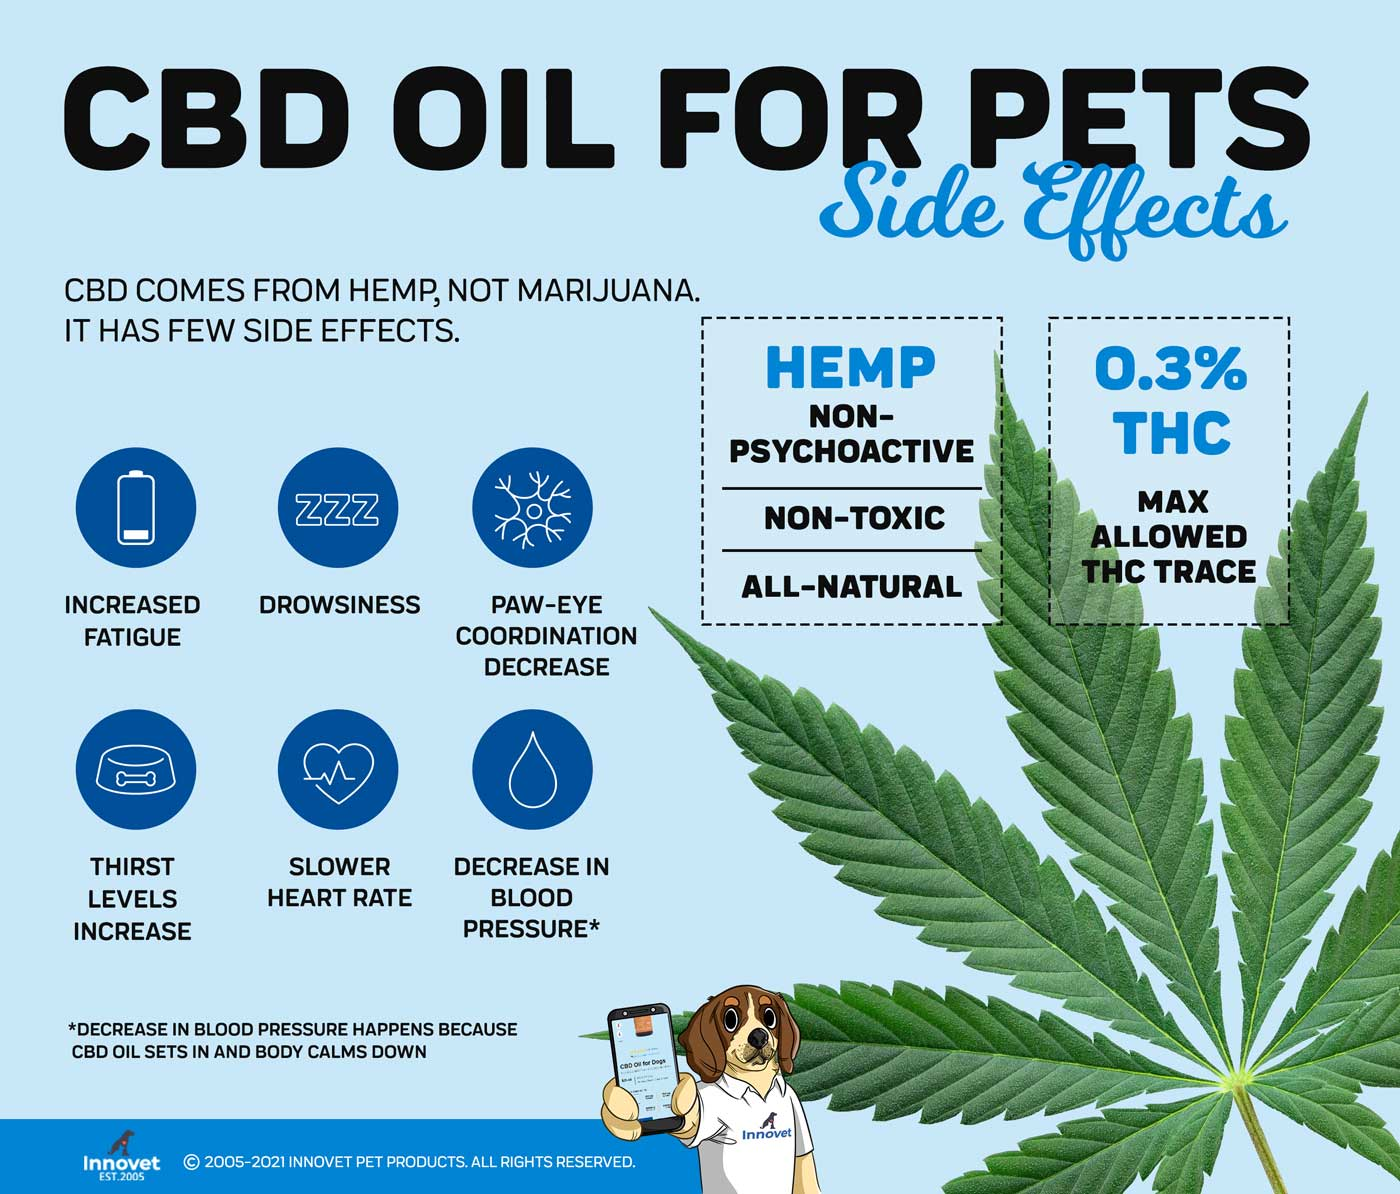 CBD Oil is safe and has no lethal side effects